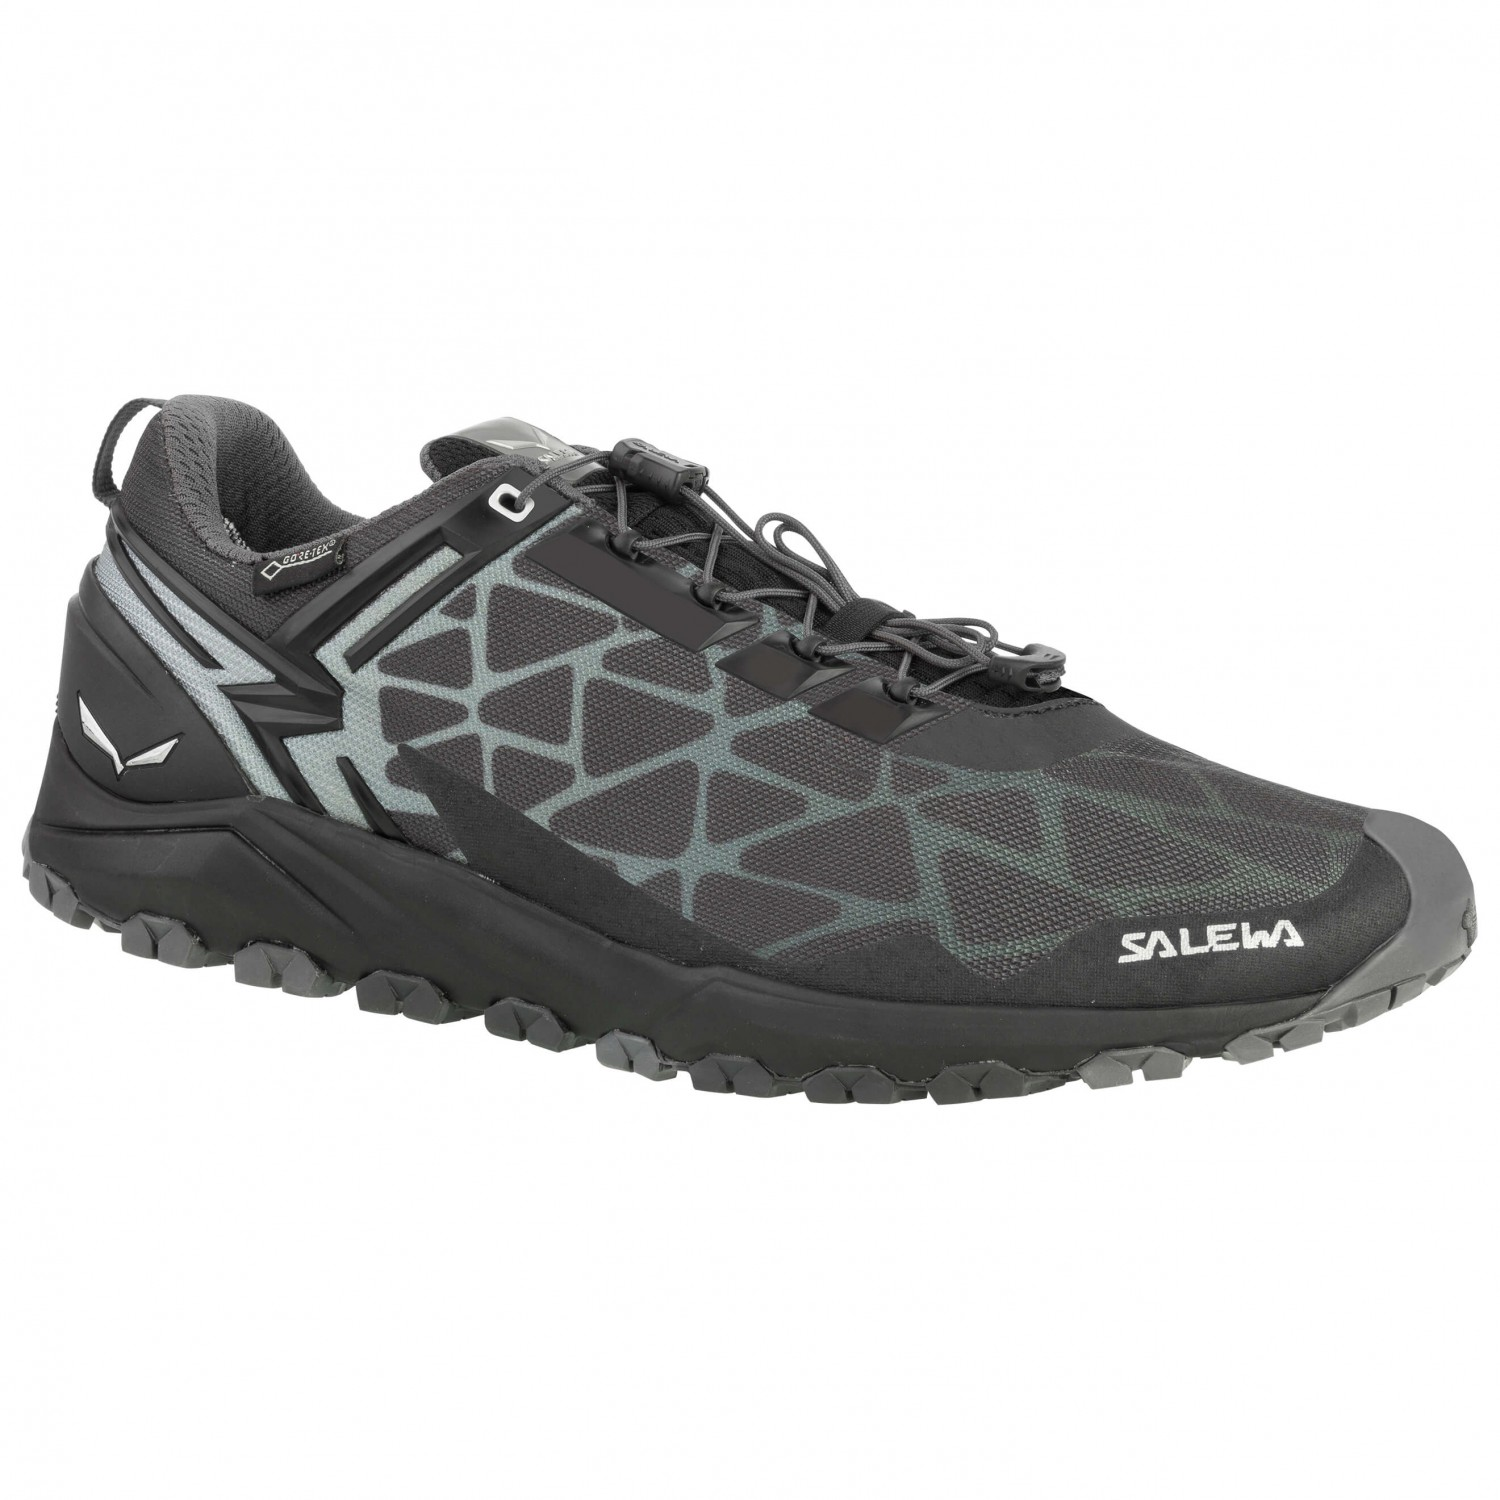 Men Running Shoes : Salewa (Men) Black/Silver Shoes Online